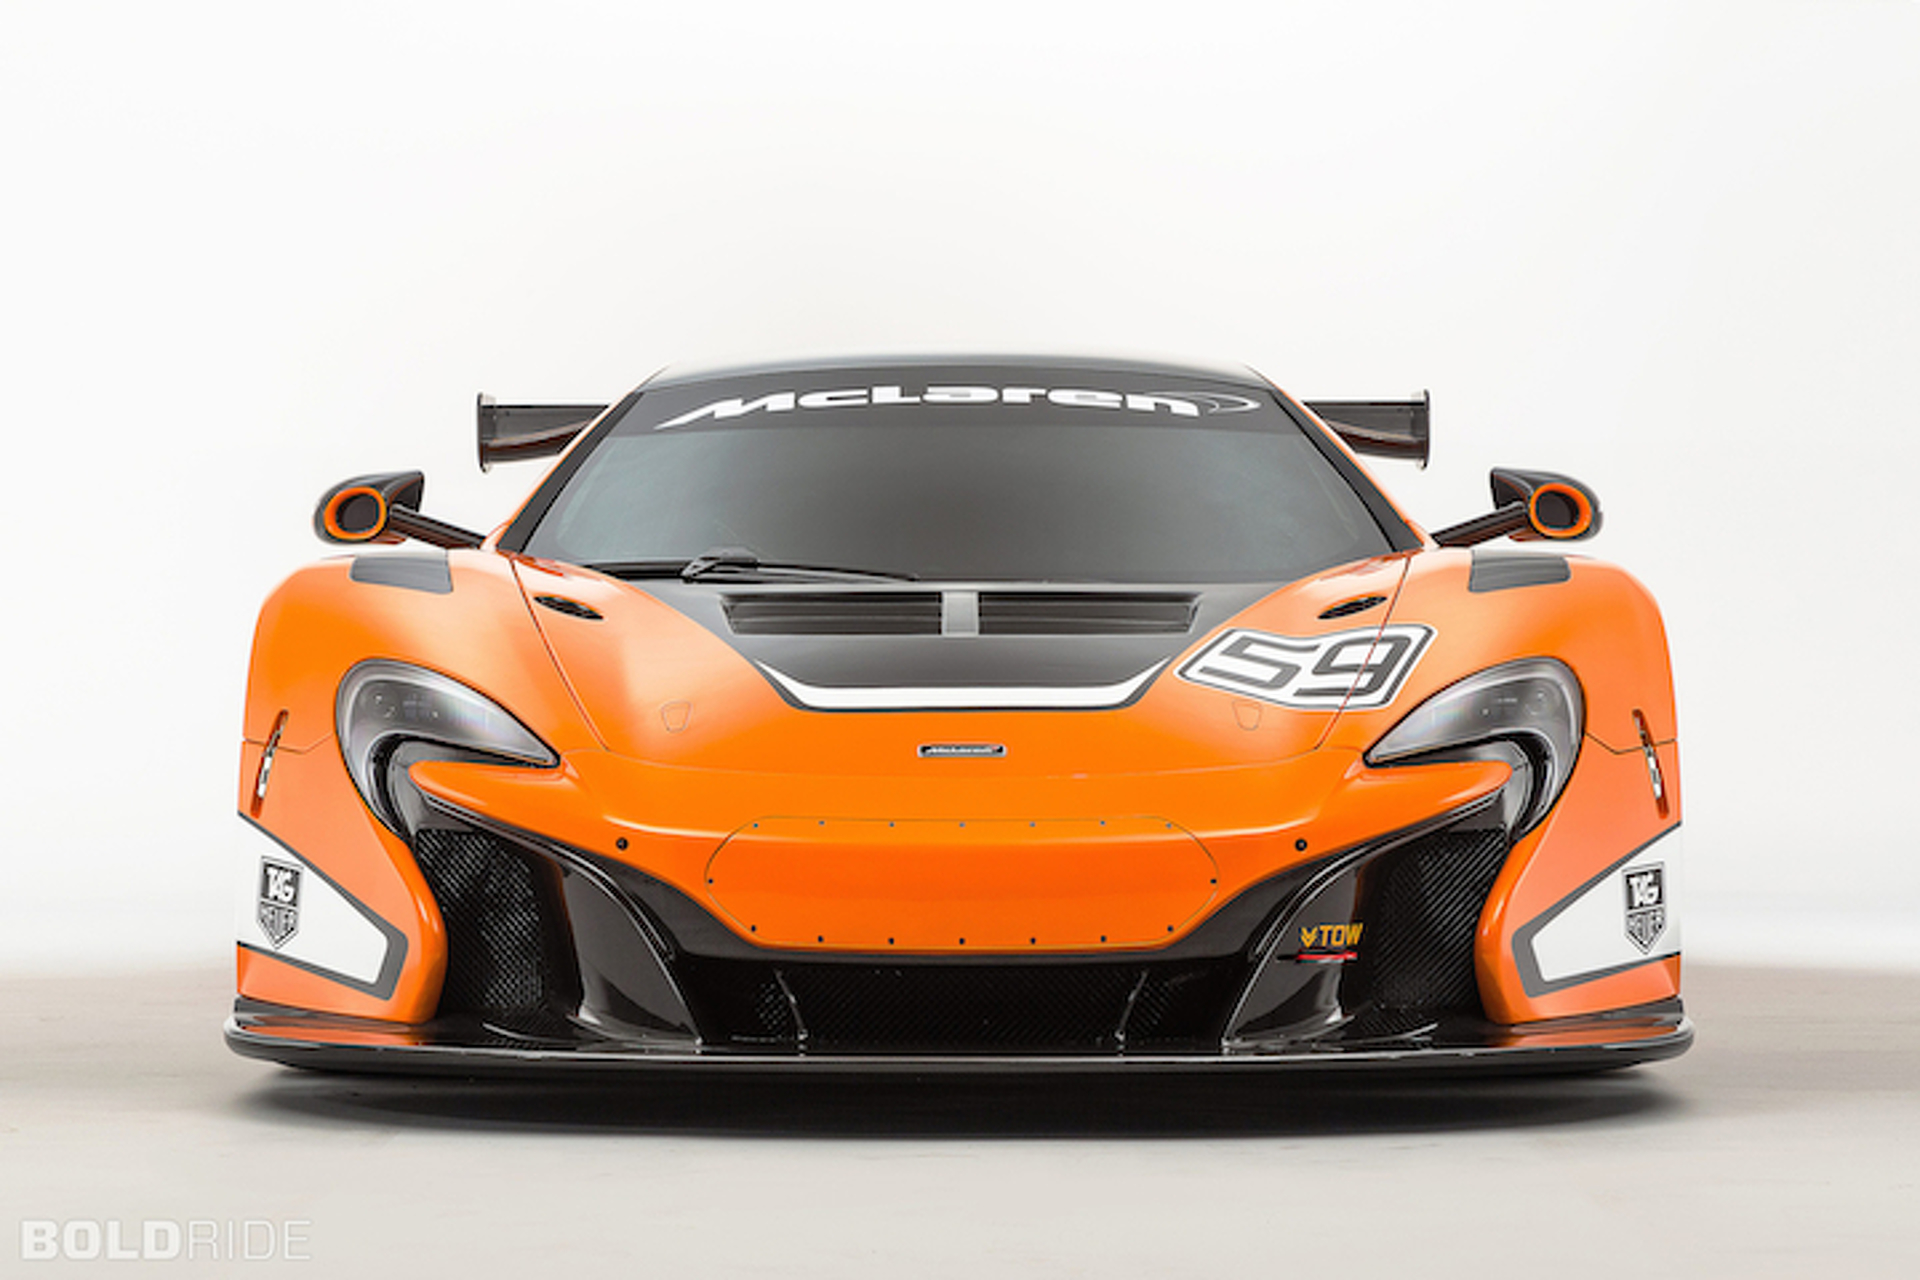 https://icdn-8.motor1.com/images/mgl/n0ejy/s1/mclaren-650s-gets-done-up-in-spectacular-gt3-fashion.jpg